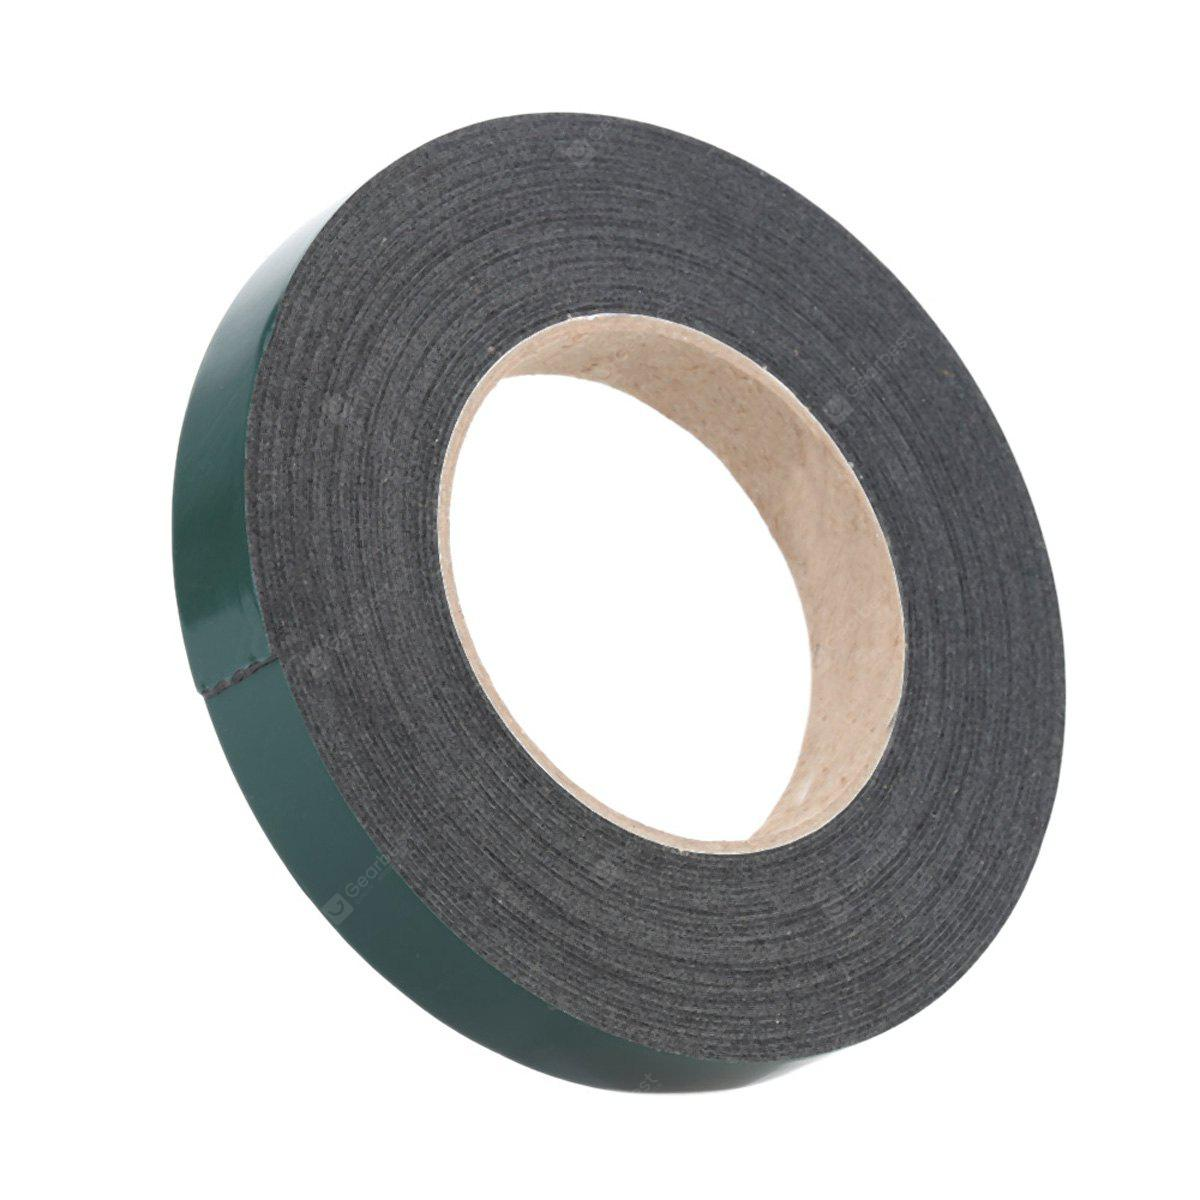 TS-GW0035-19 10m Automotive Adhesive Tape